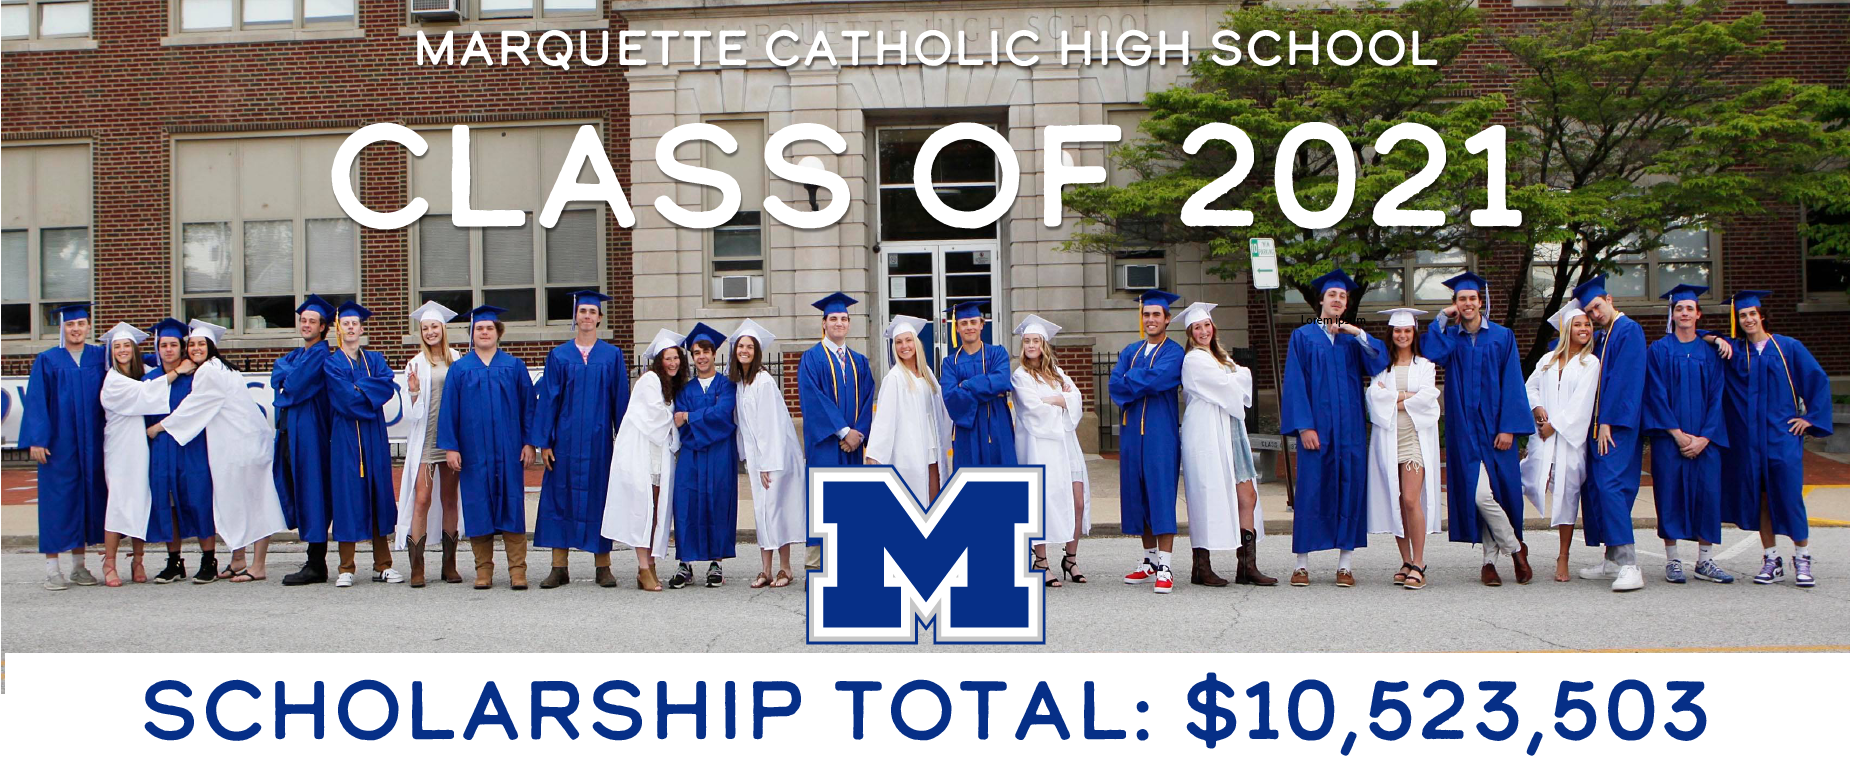 class of 2021 scholarship totals